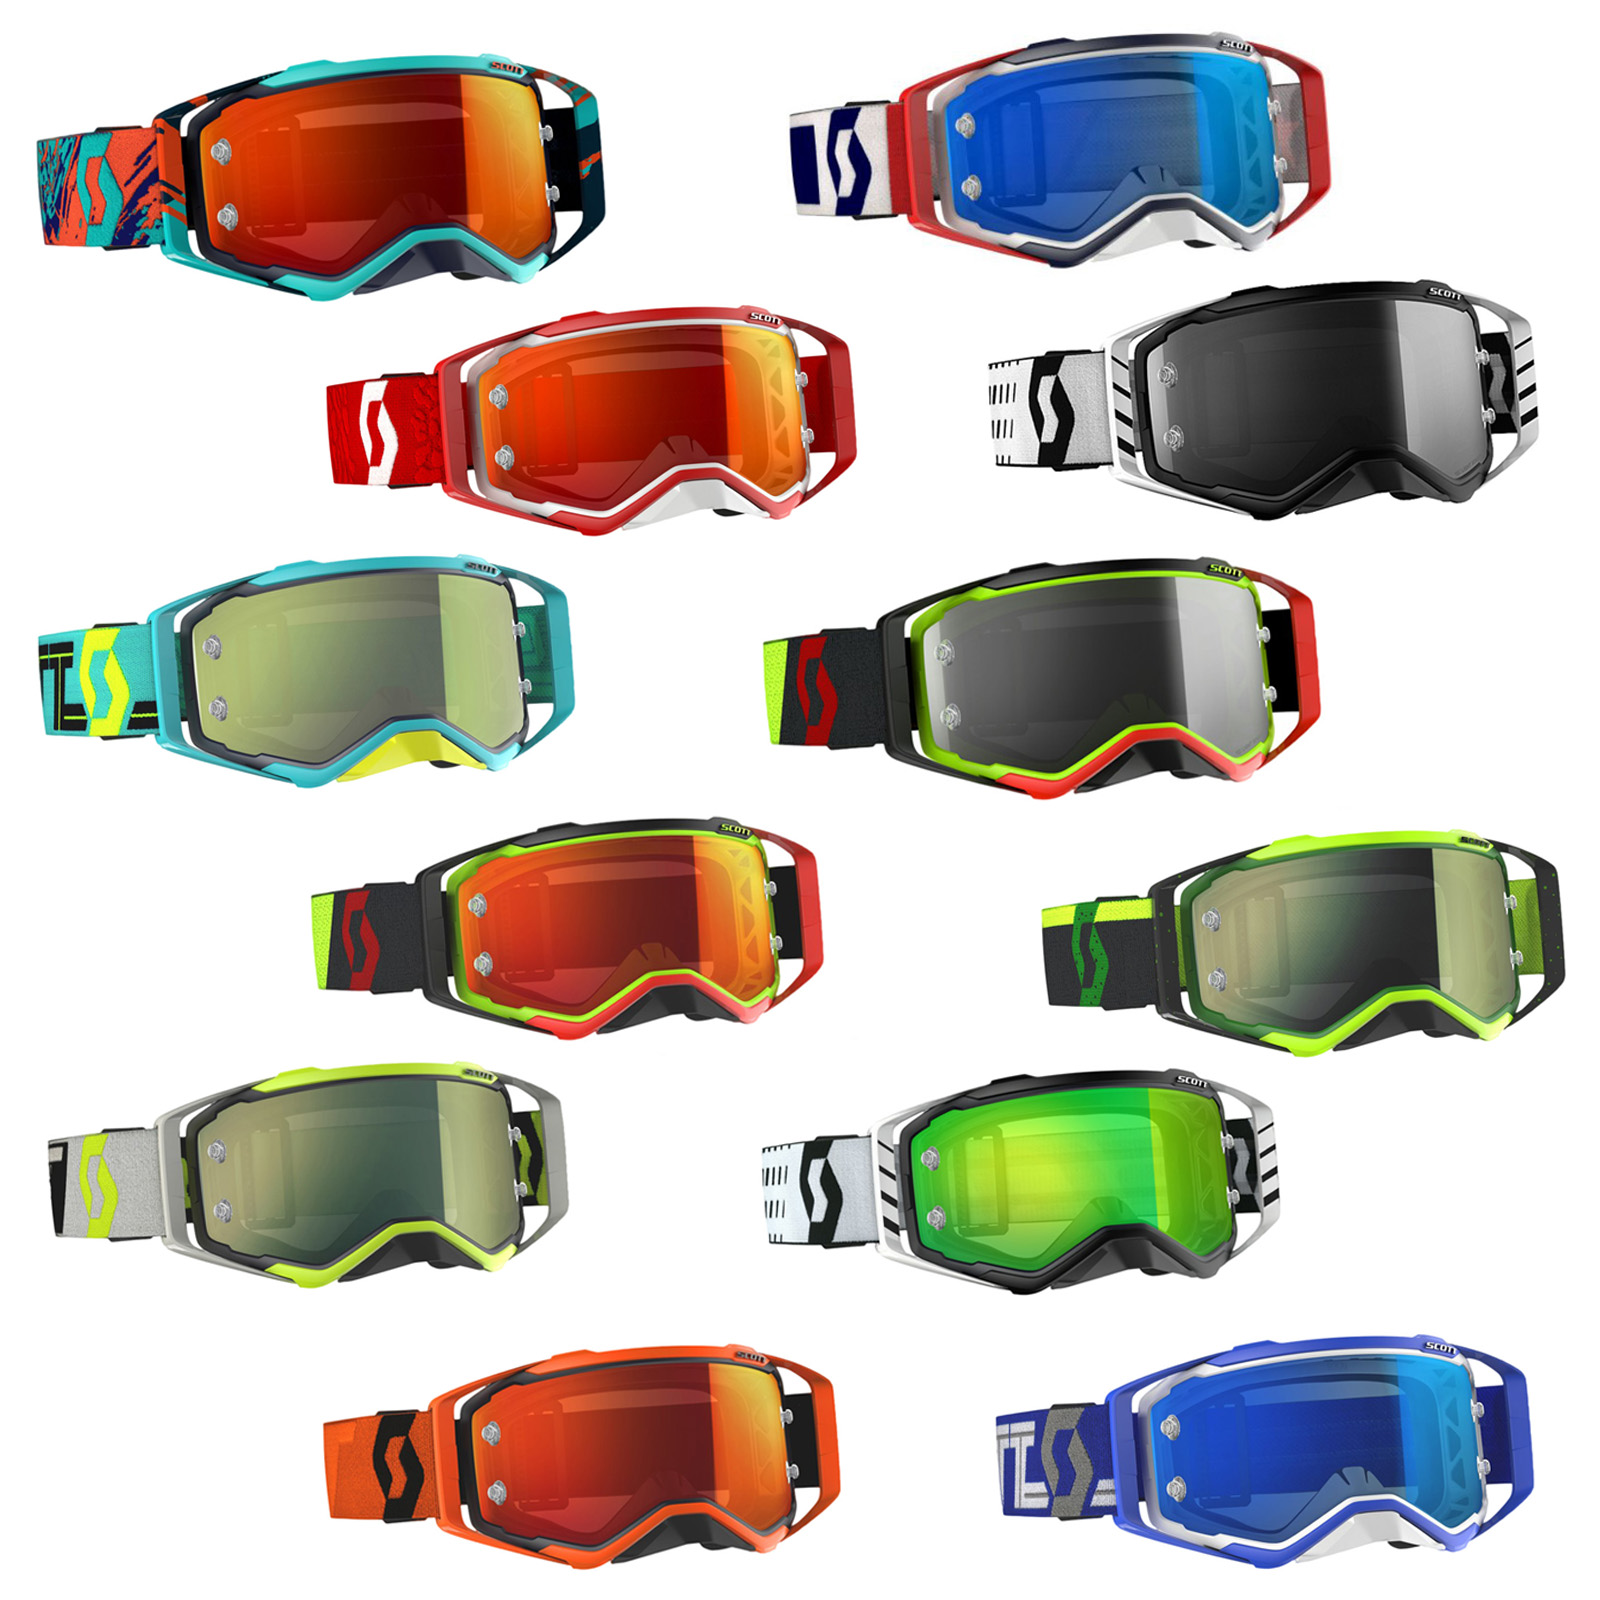 52481475471 Details about scott usa motorcycle offroad dirtbike atv prospect goggles  jpg 1600x1600 Scott usa goggles